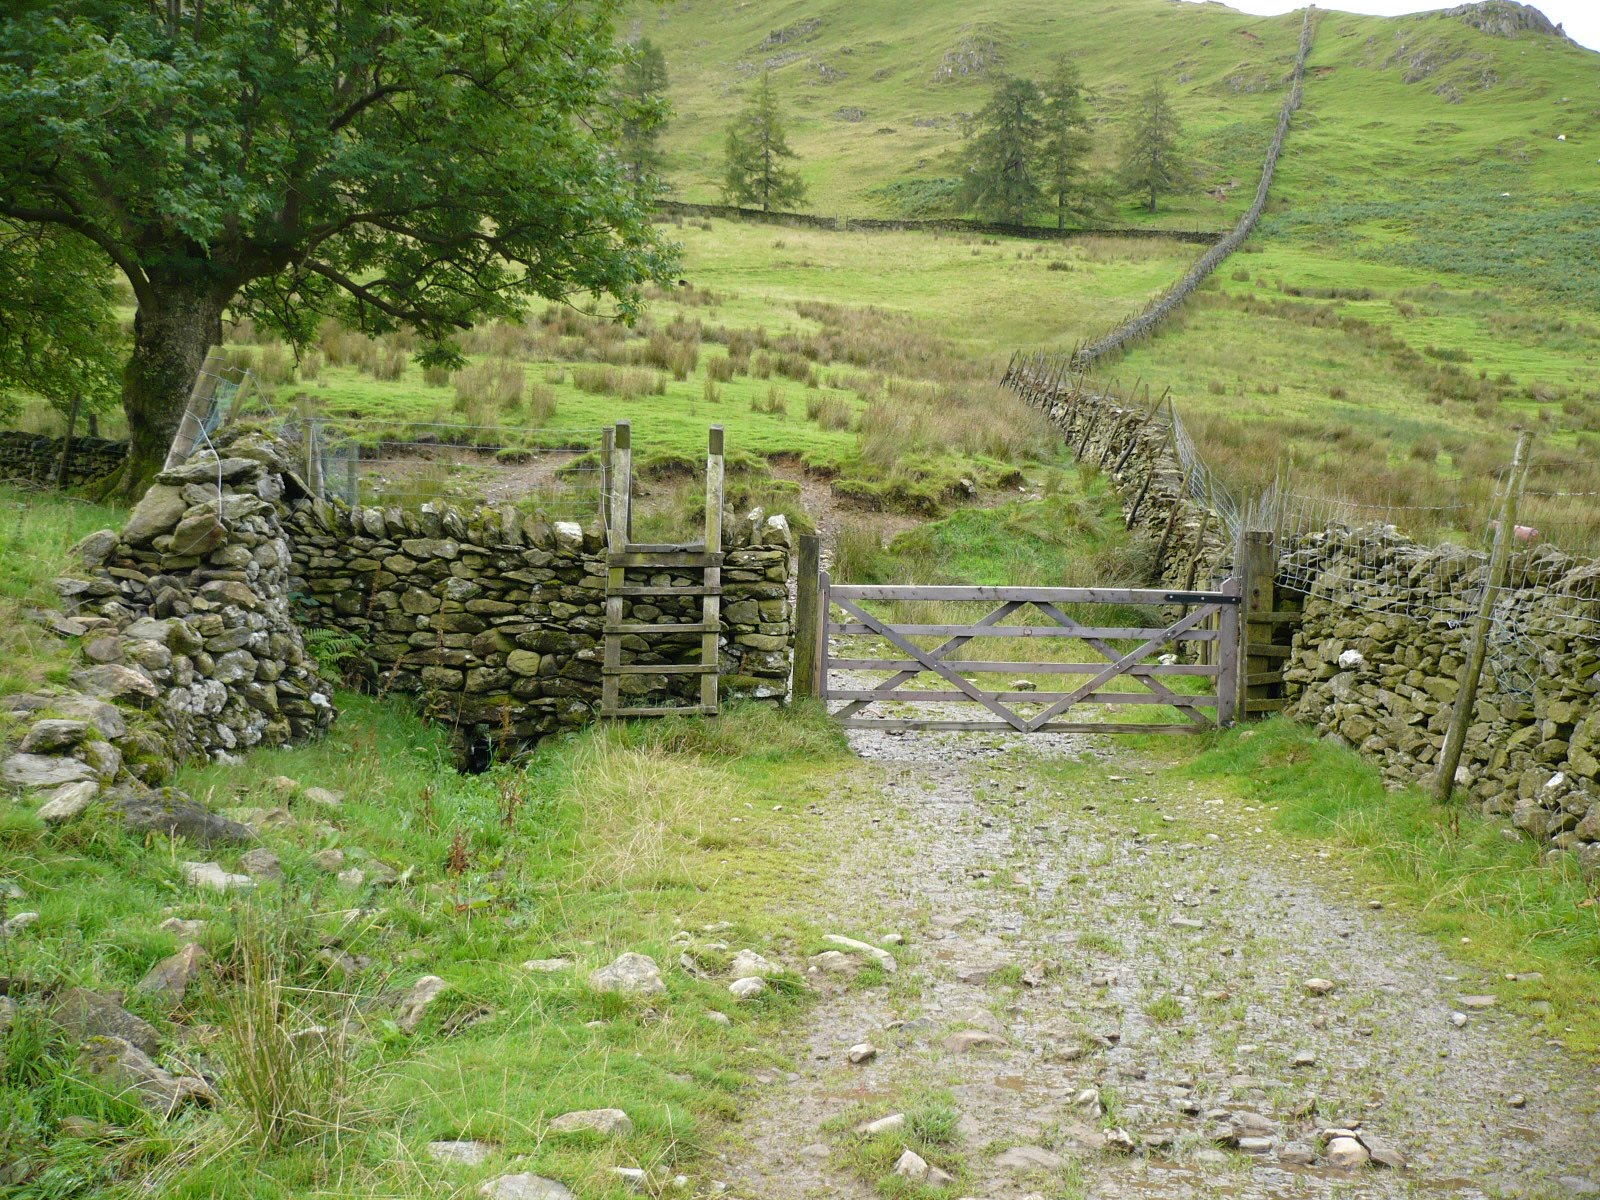 Hartsop hall cottages 171 walking holiday cottages walking - Through The Gate And Then Follow The Wall Up To Hartsop Dodd